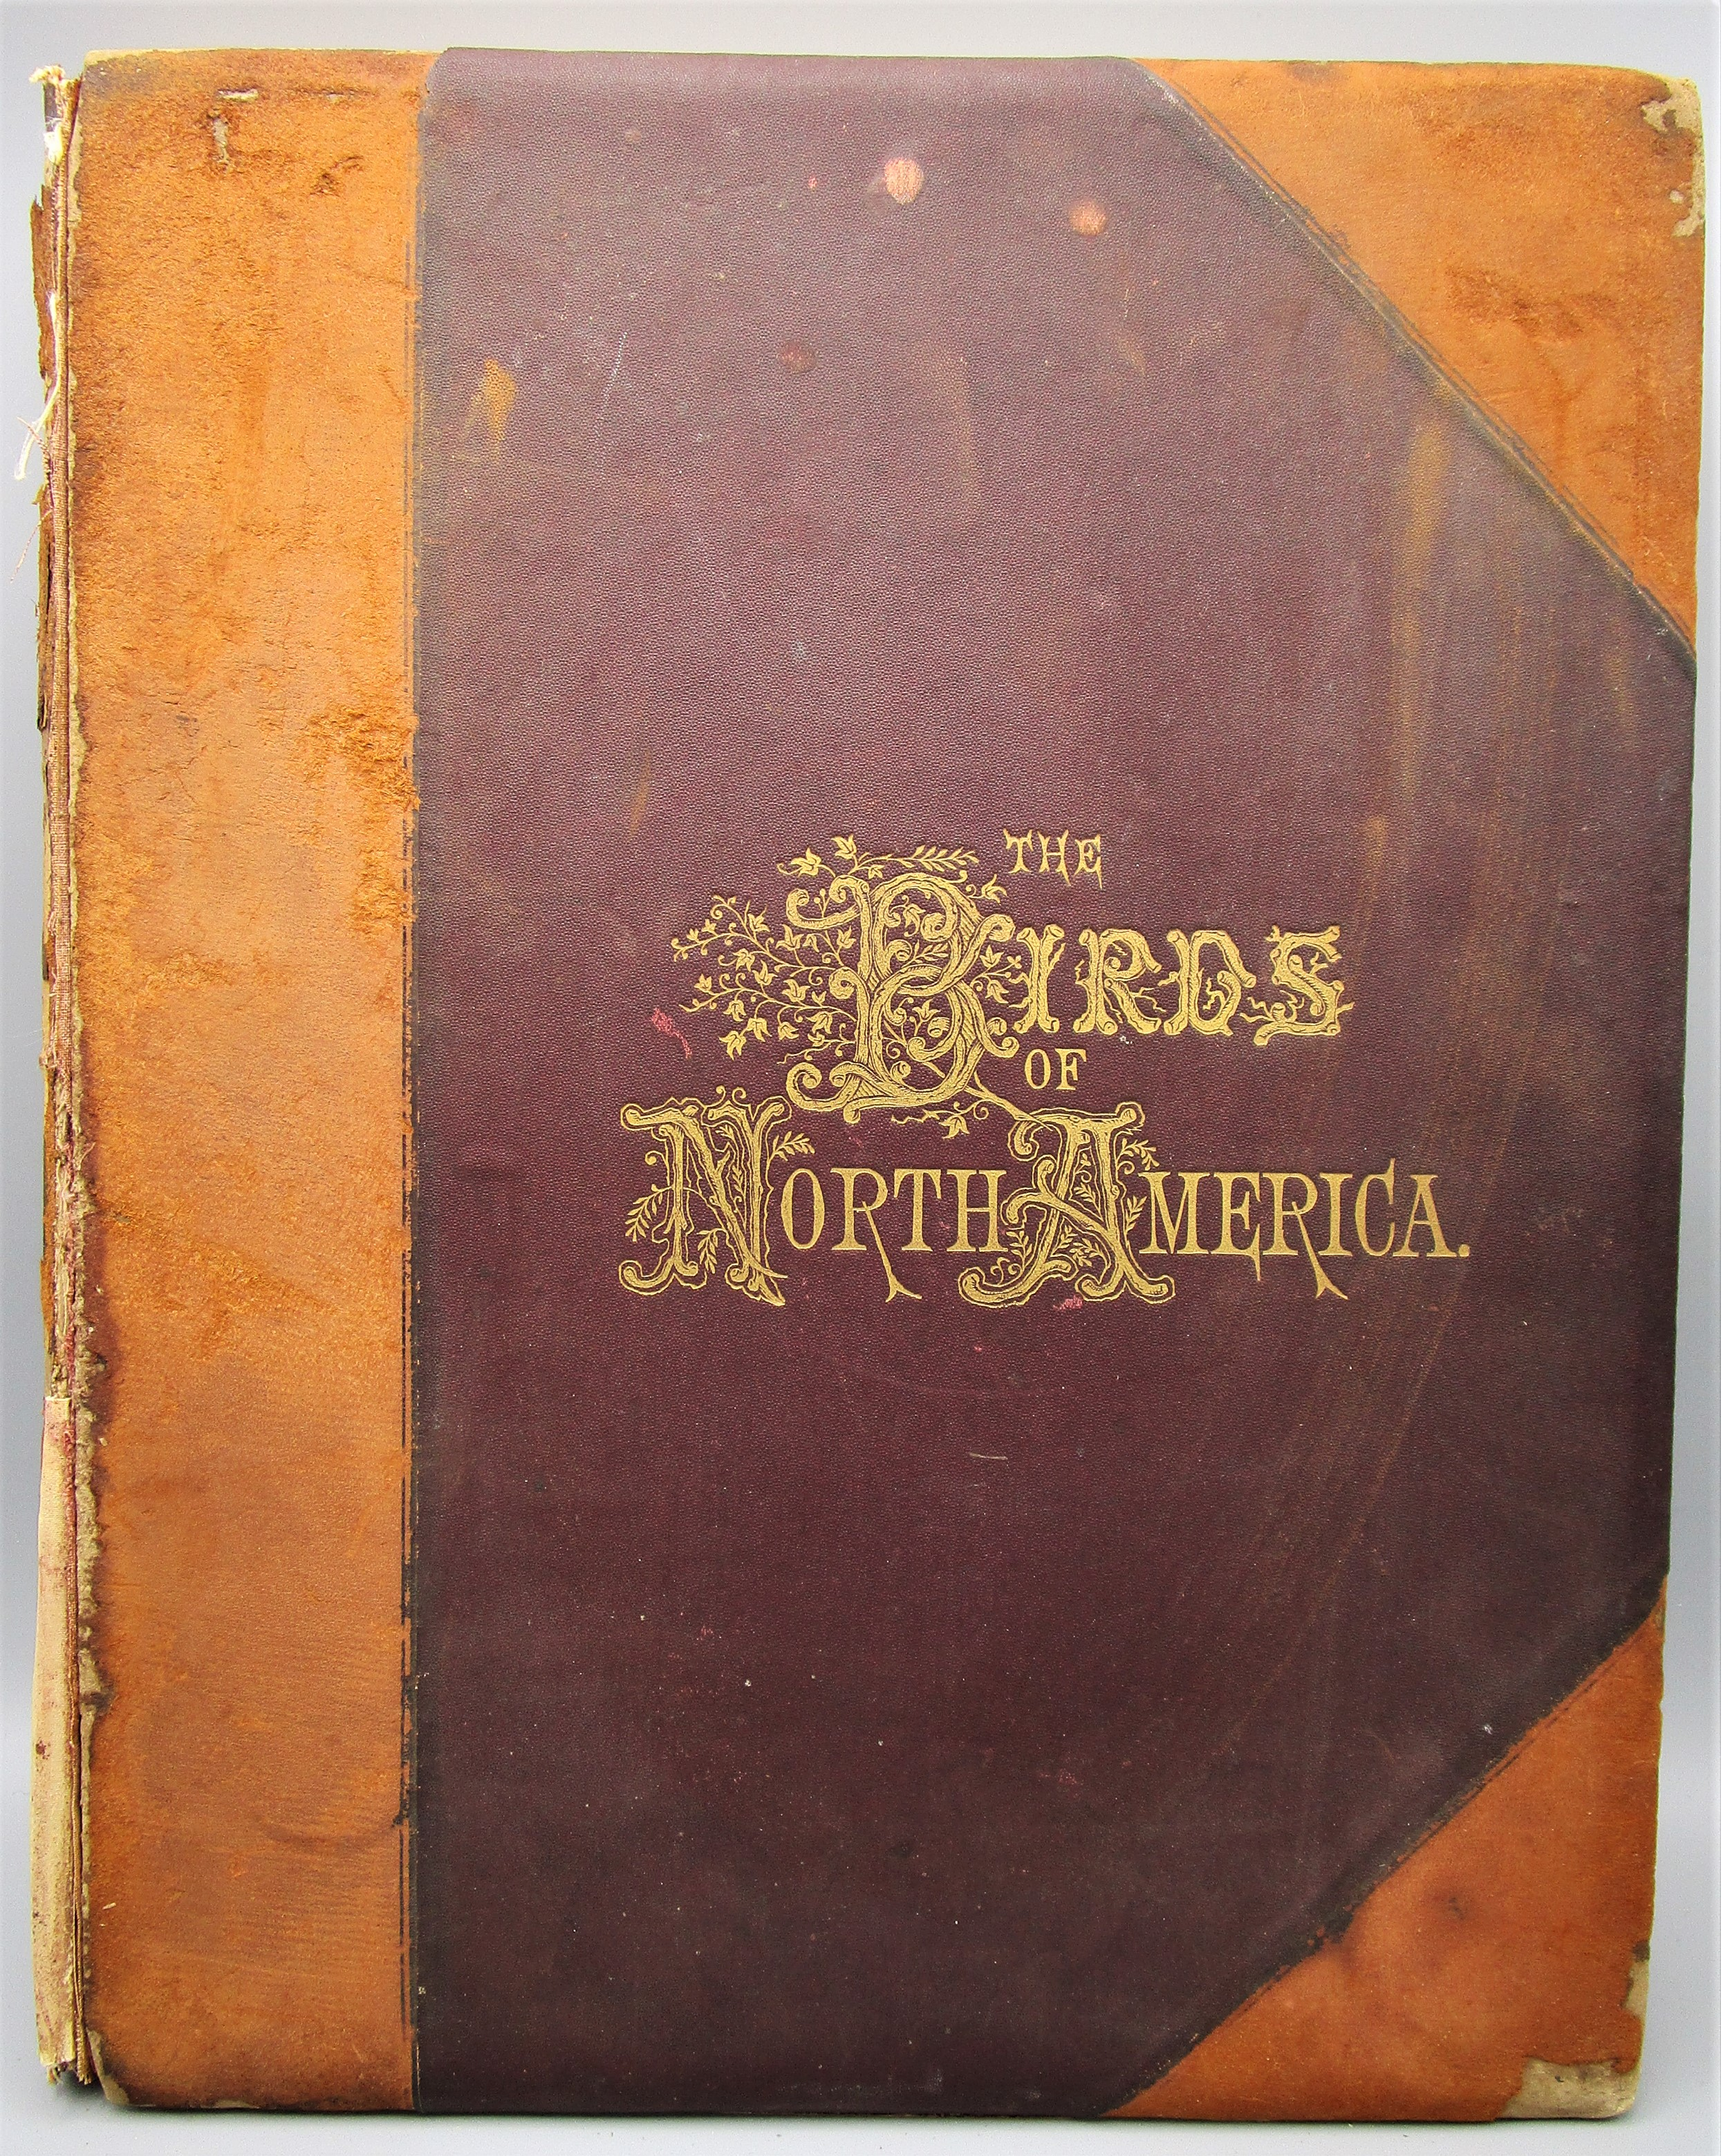 THE BIRDS OF NORTH AMERICA, by Jacob H. Studer - 1897